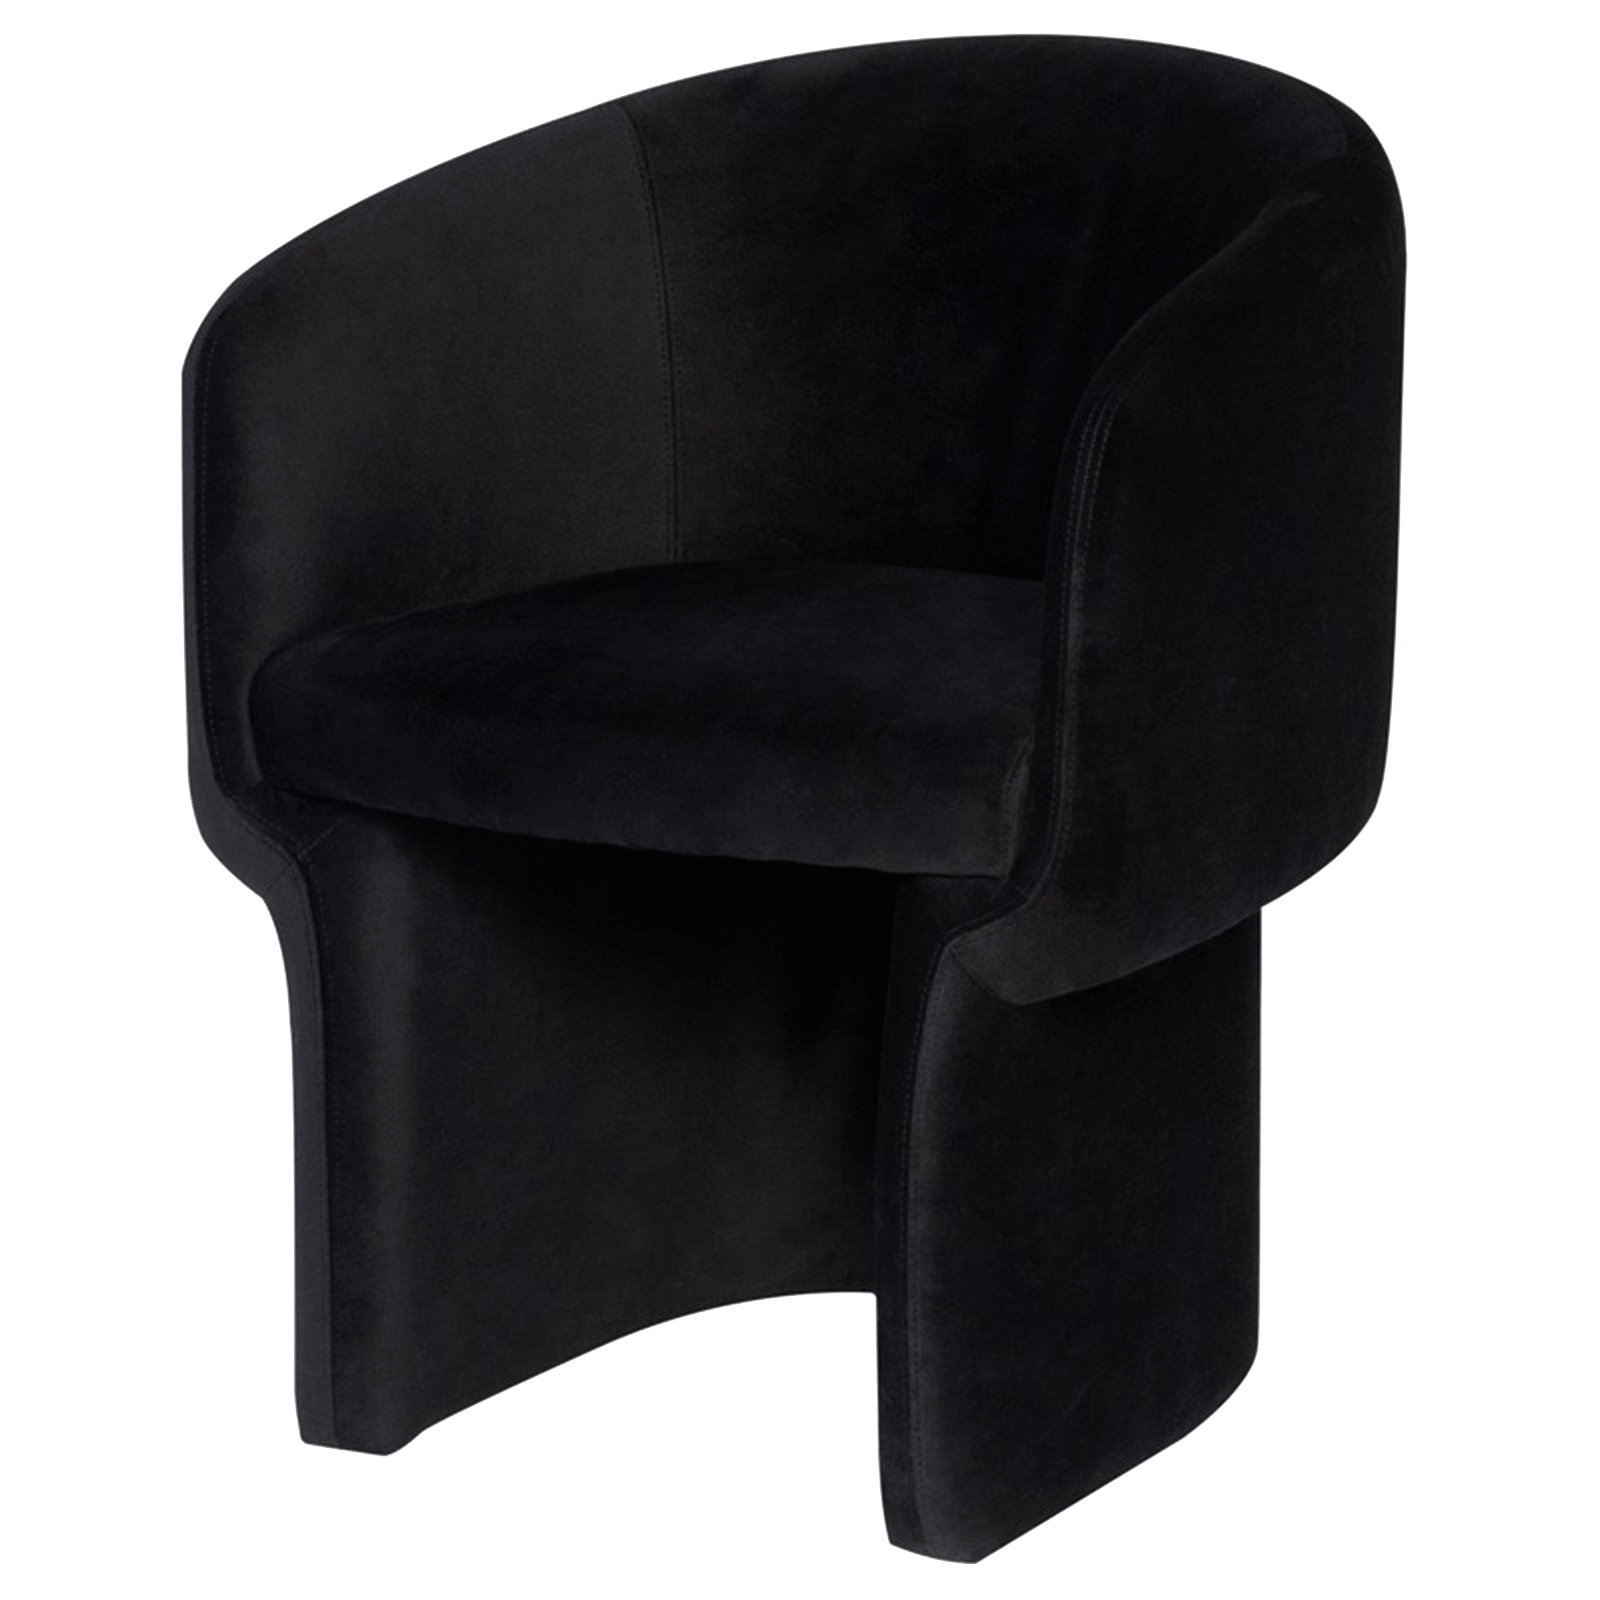 Nuevo Furniture Black Clementine Dining Chair